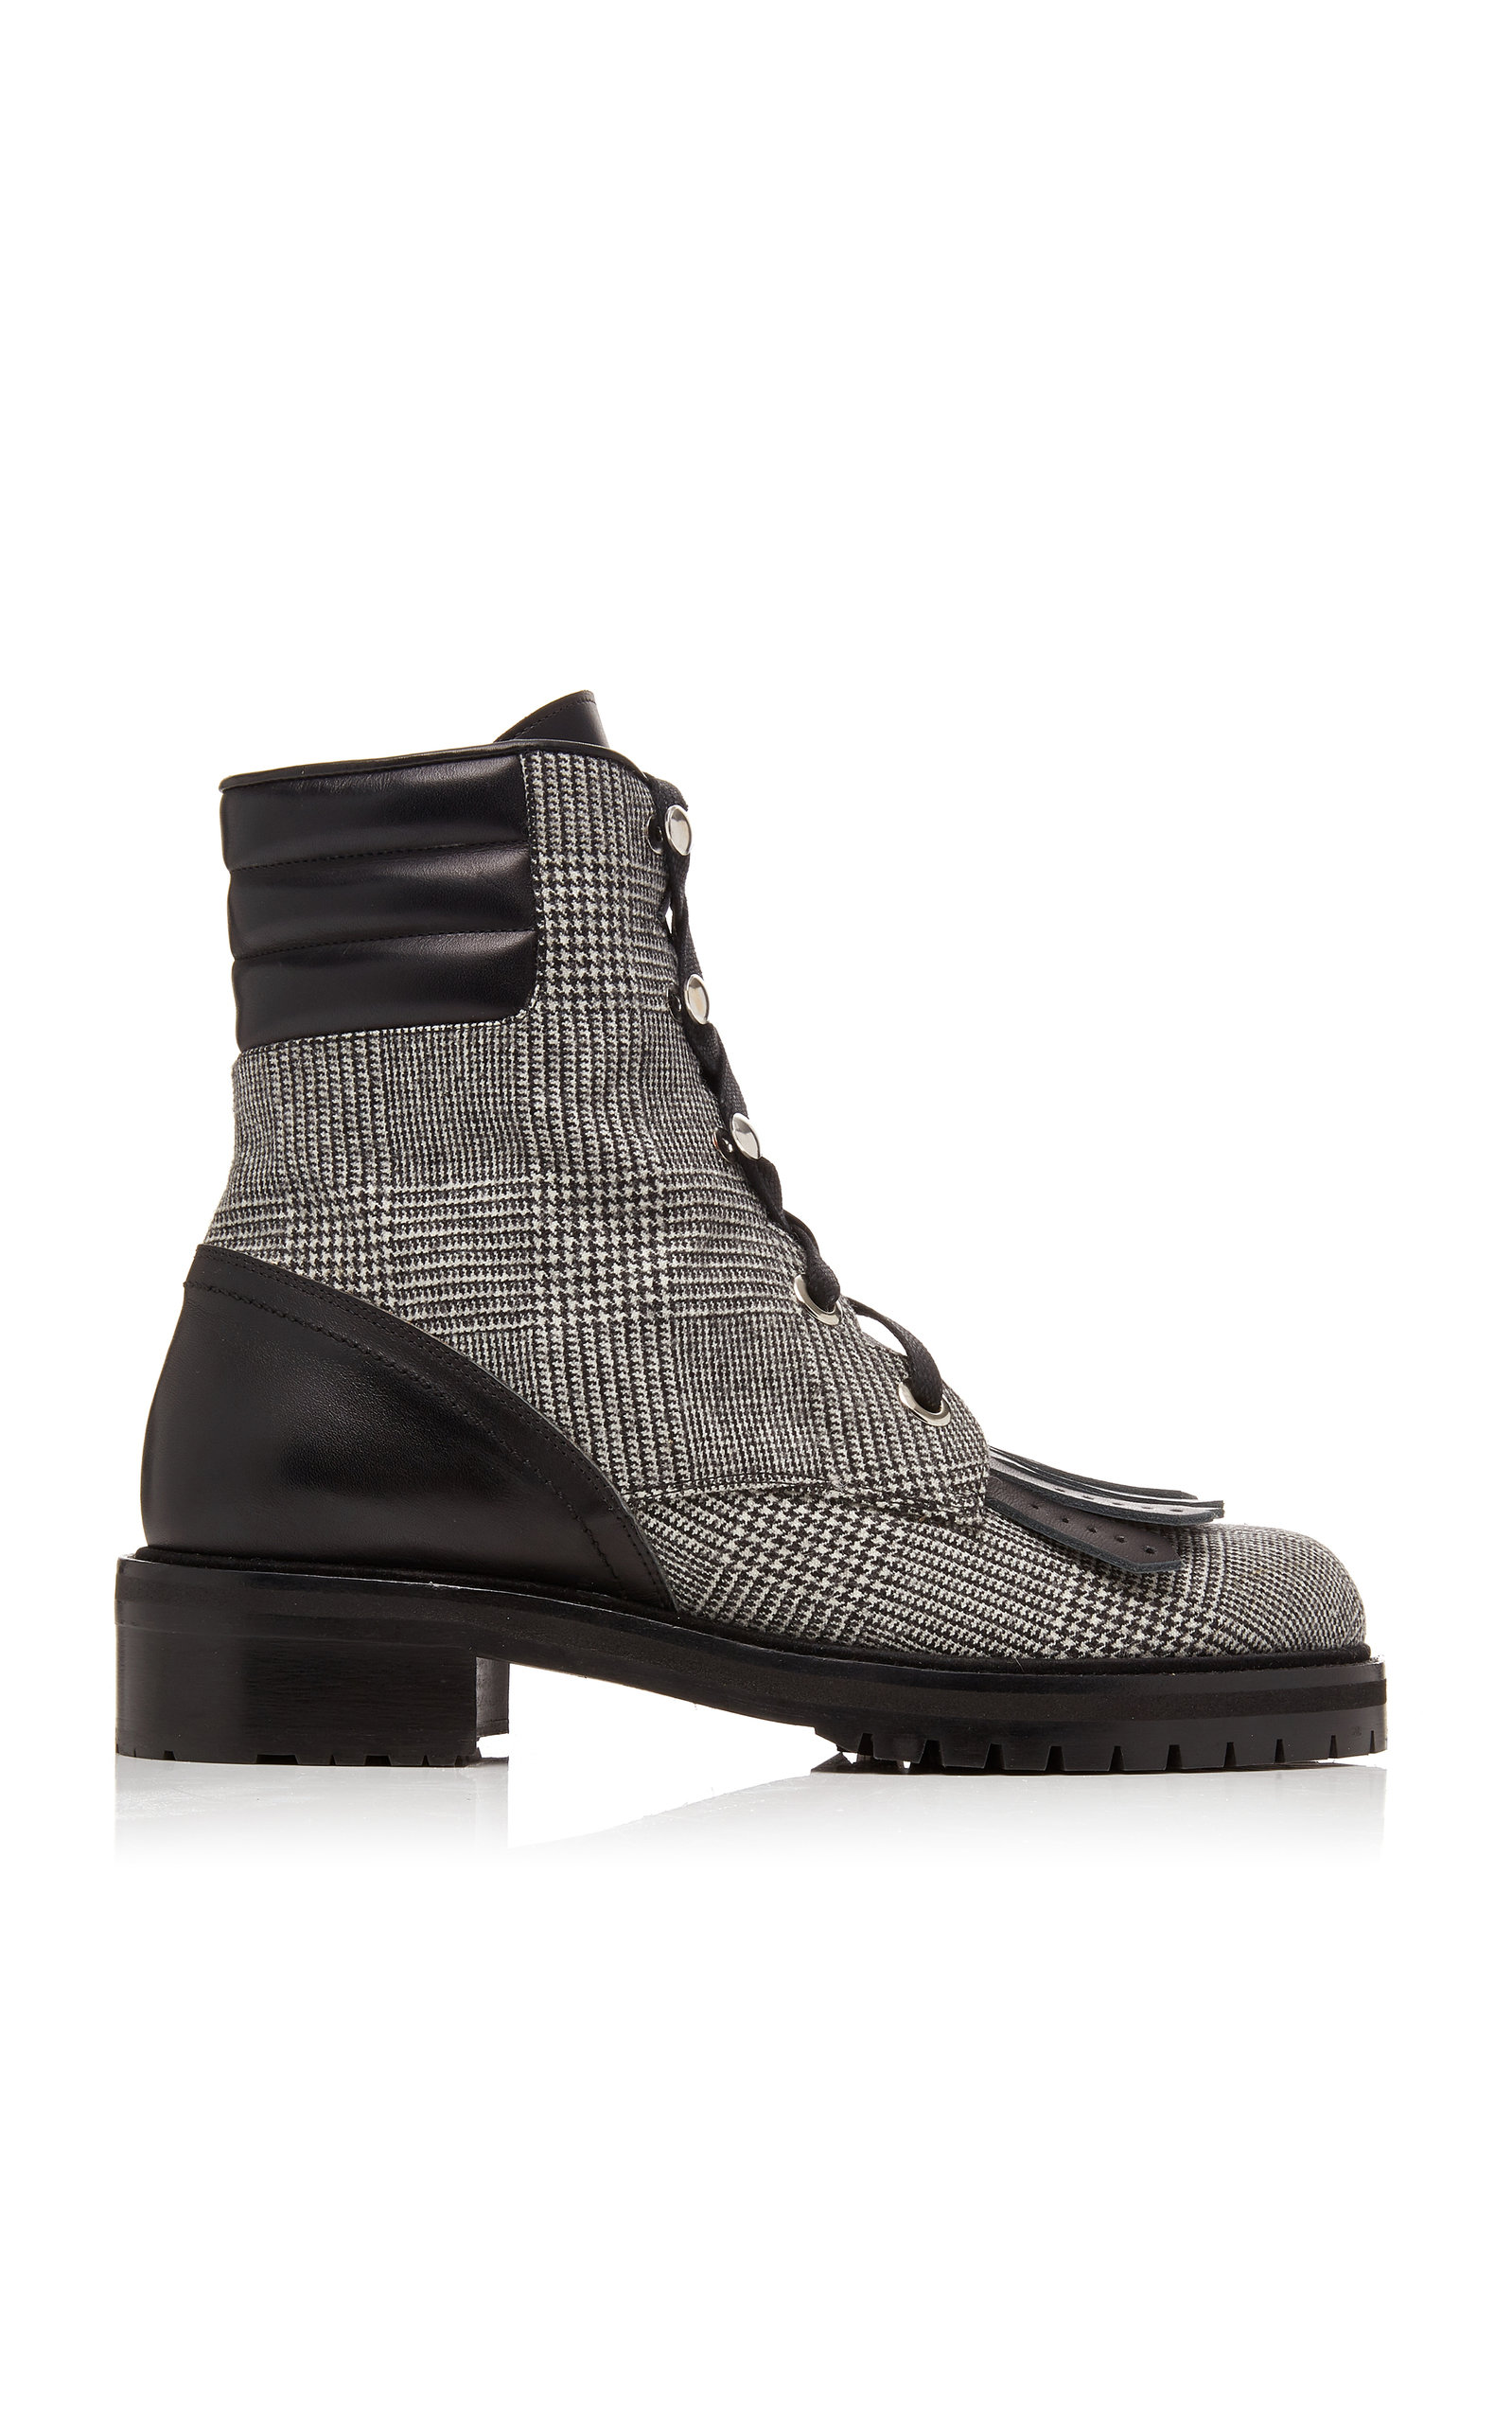 Tabitha Simmons | Tabitha Simmons Rhodes Leather-Trimmed Houndstooth Wool Ankle Boots | Clouty